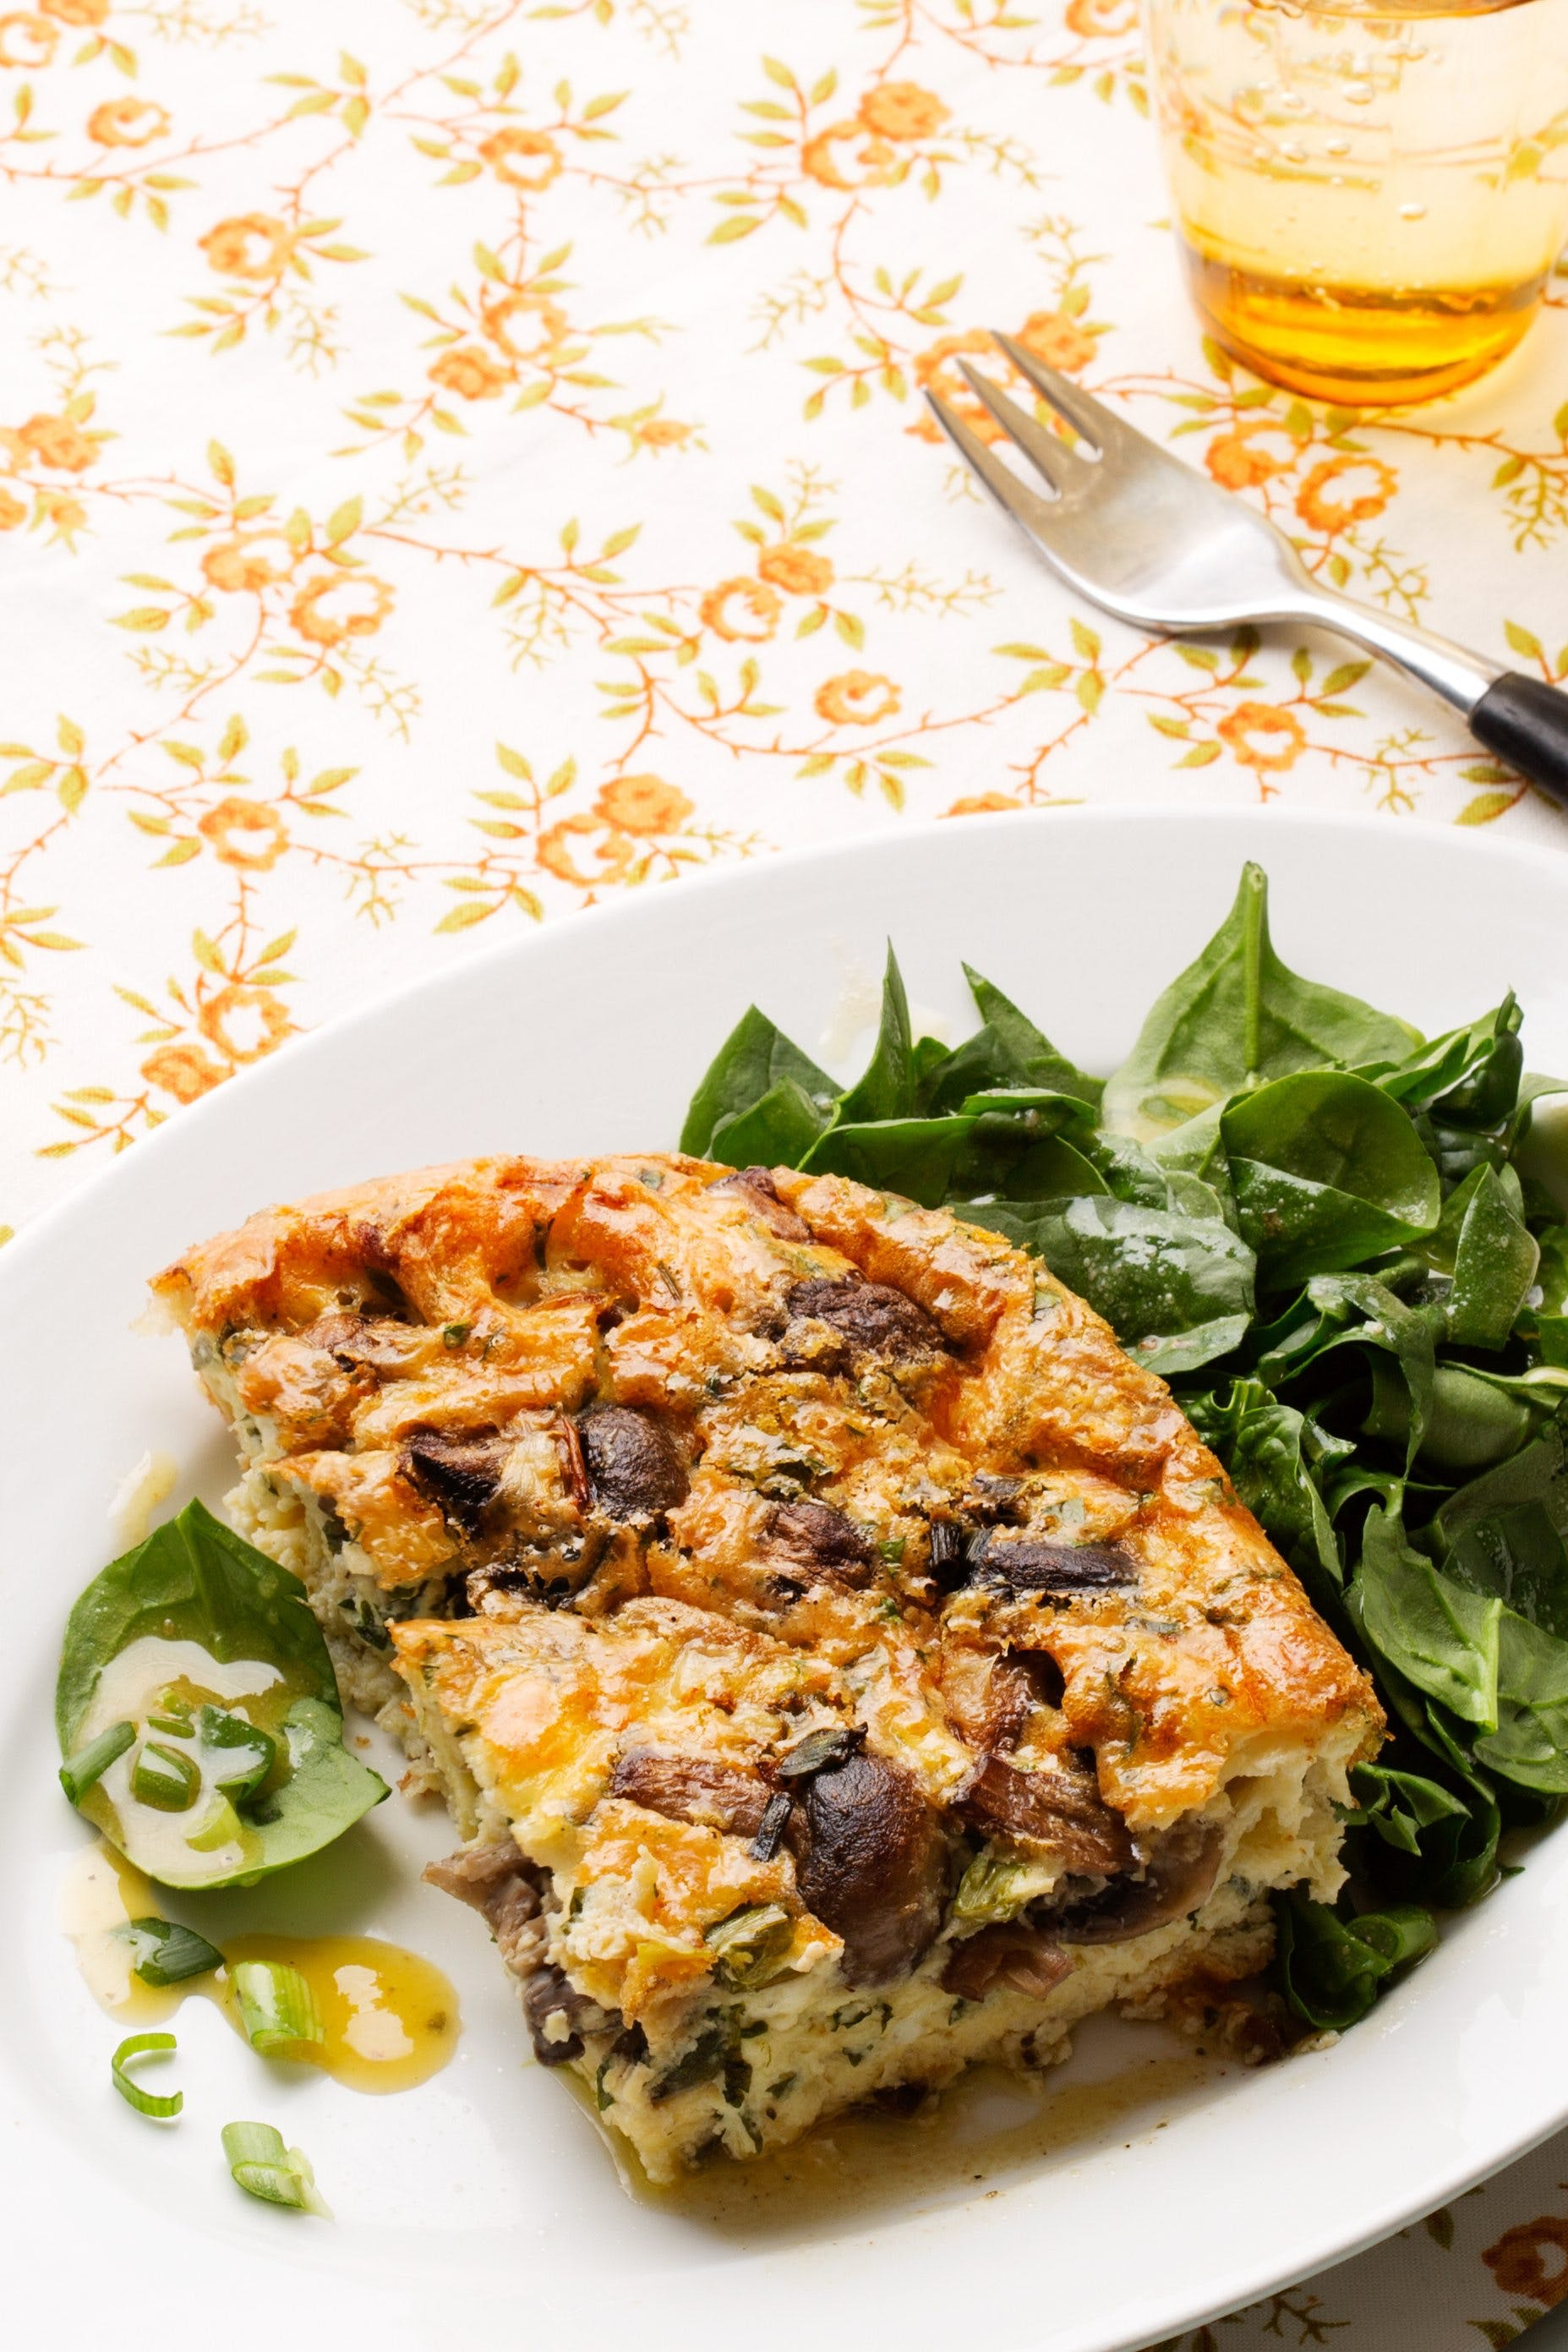 Keto mushroom and cheese frittata